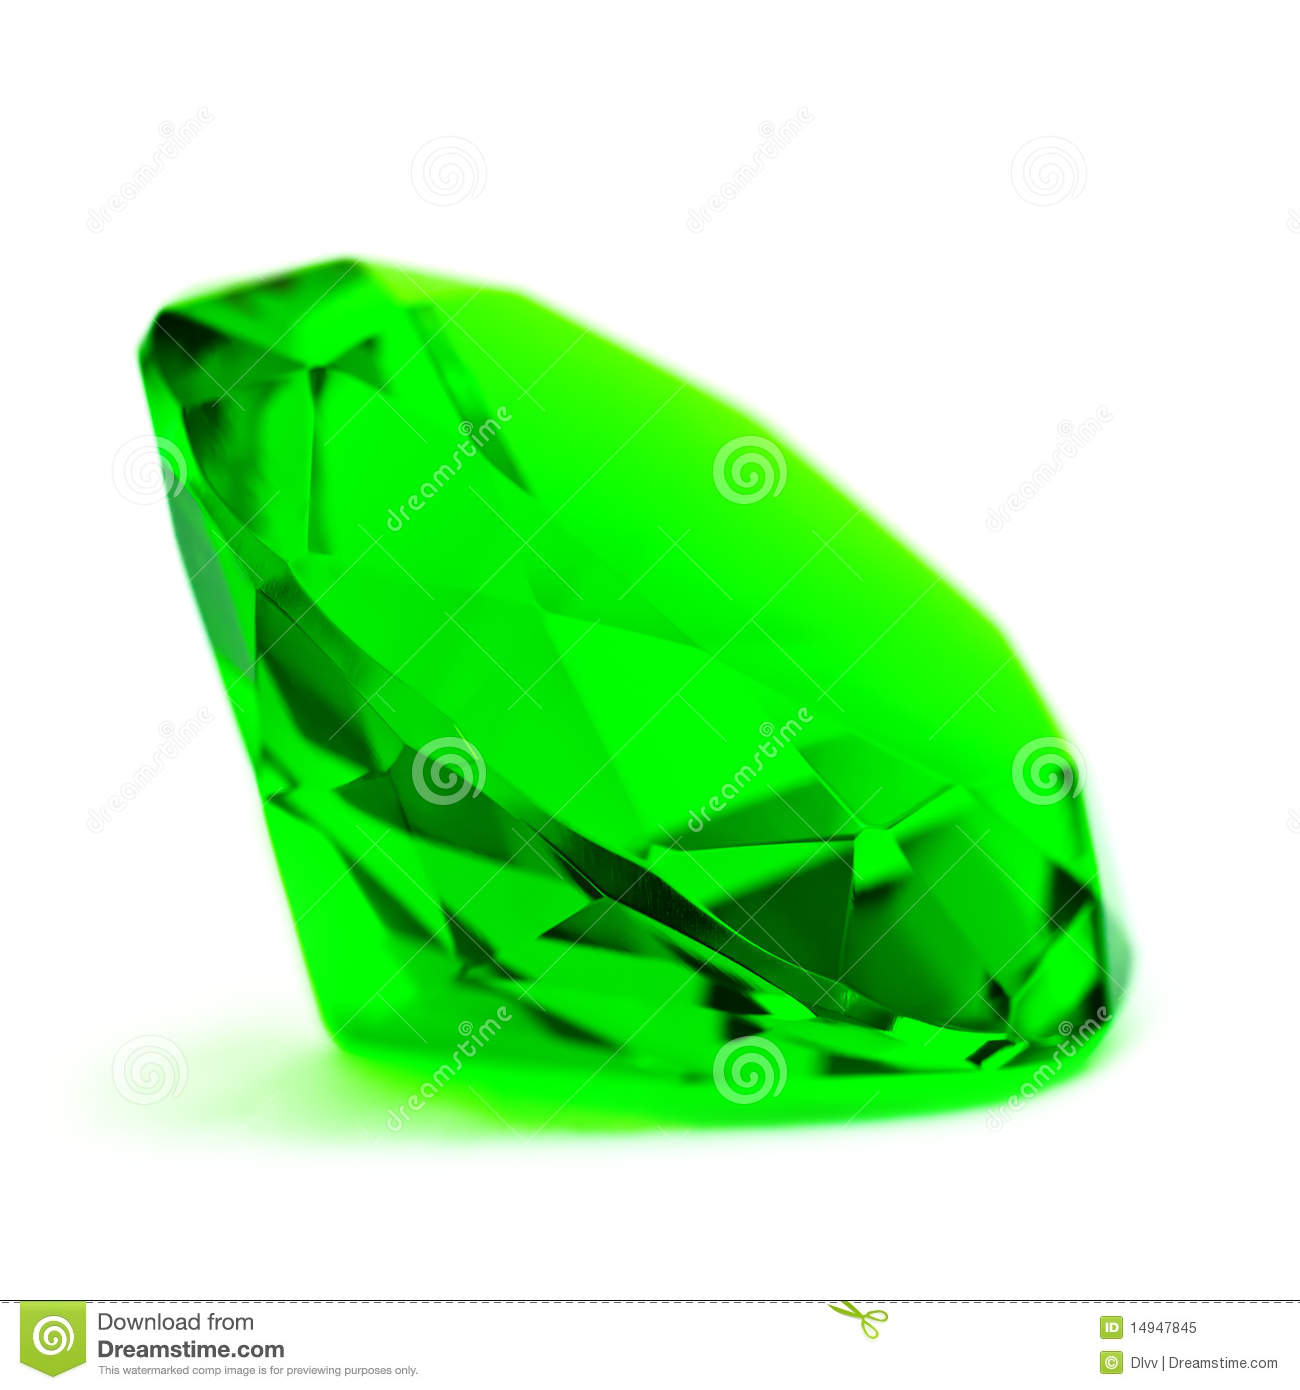 emeraldvstsavorite which is us emeralds green for gemstone taylor emerald tsavorite vs and tsavorites blog the you